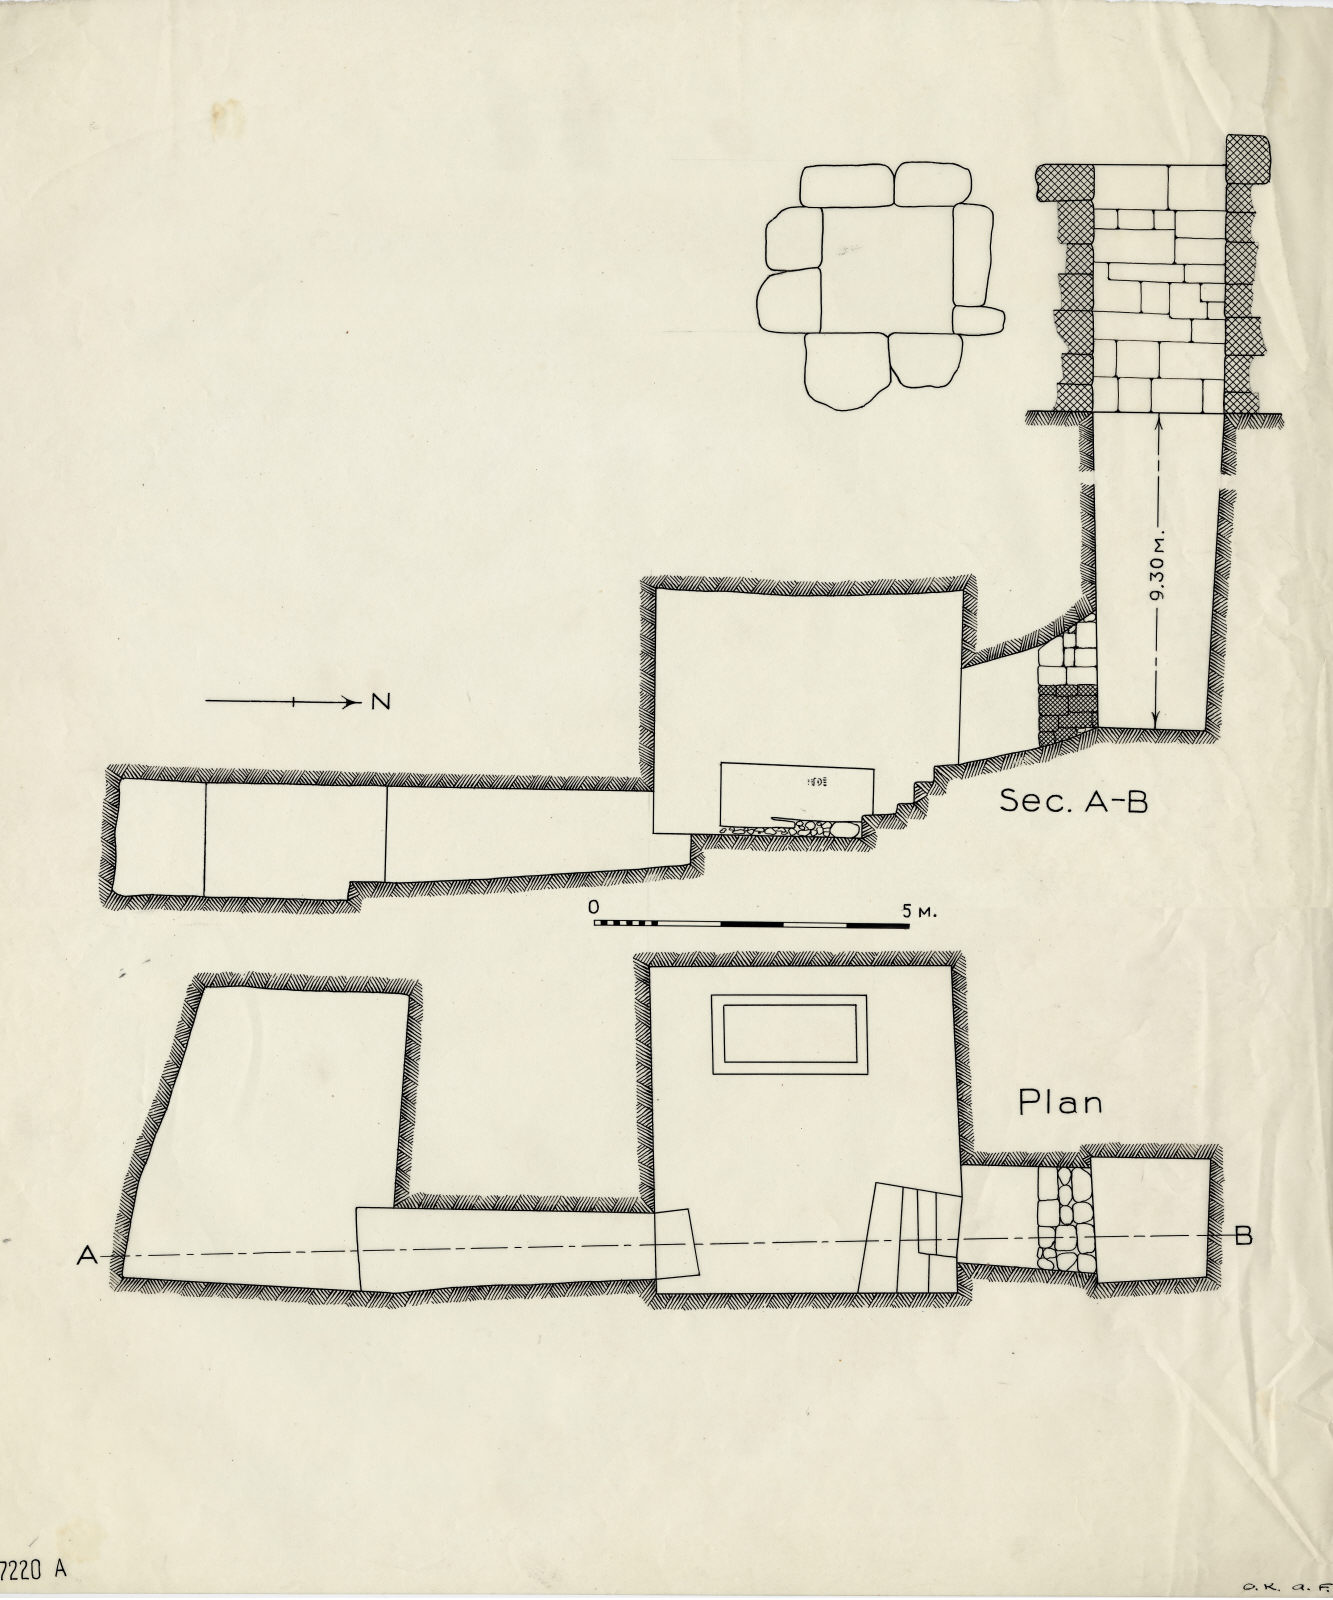 Maps and plans: G 7220, Shaft A